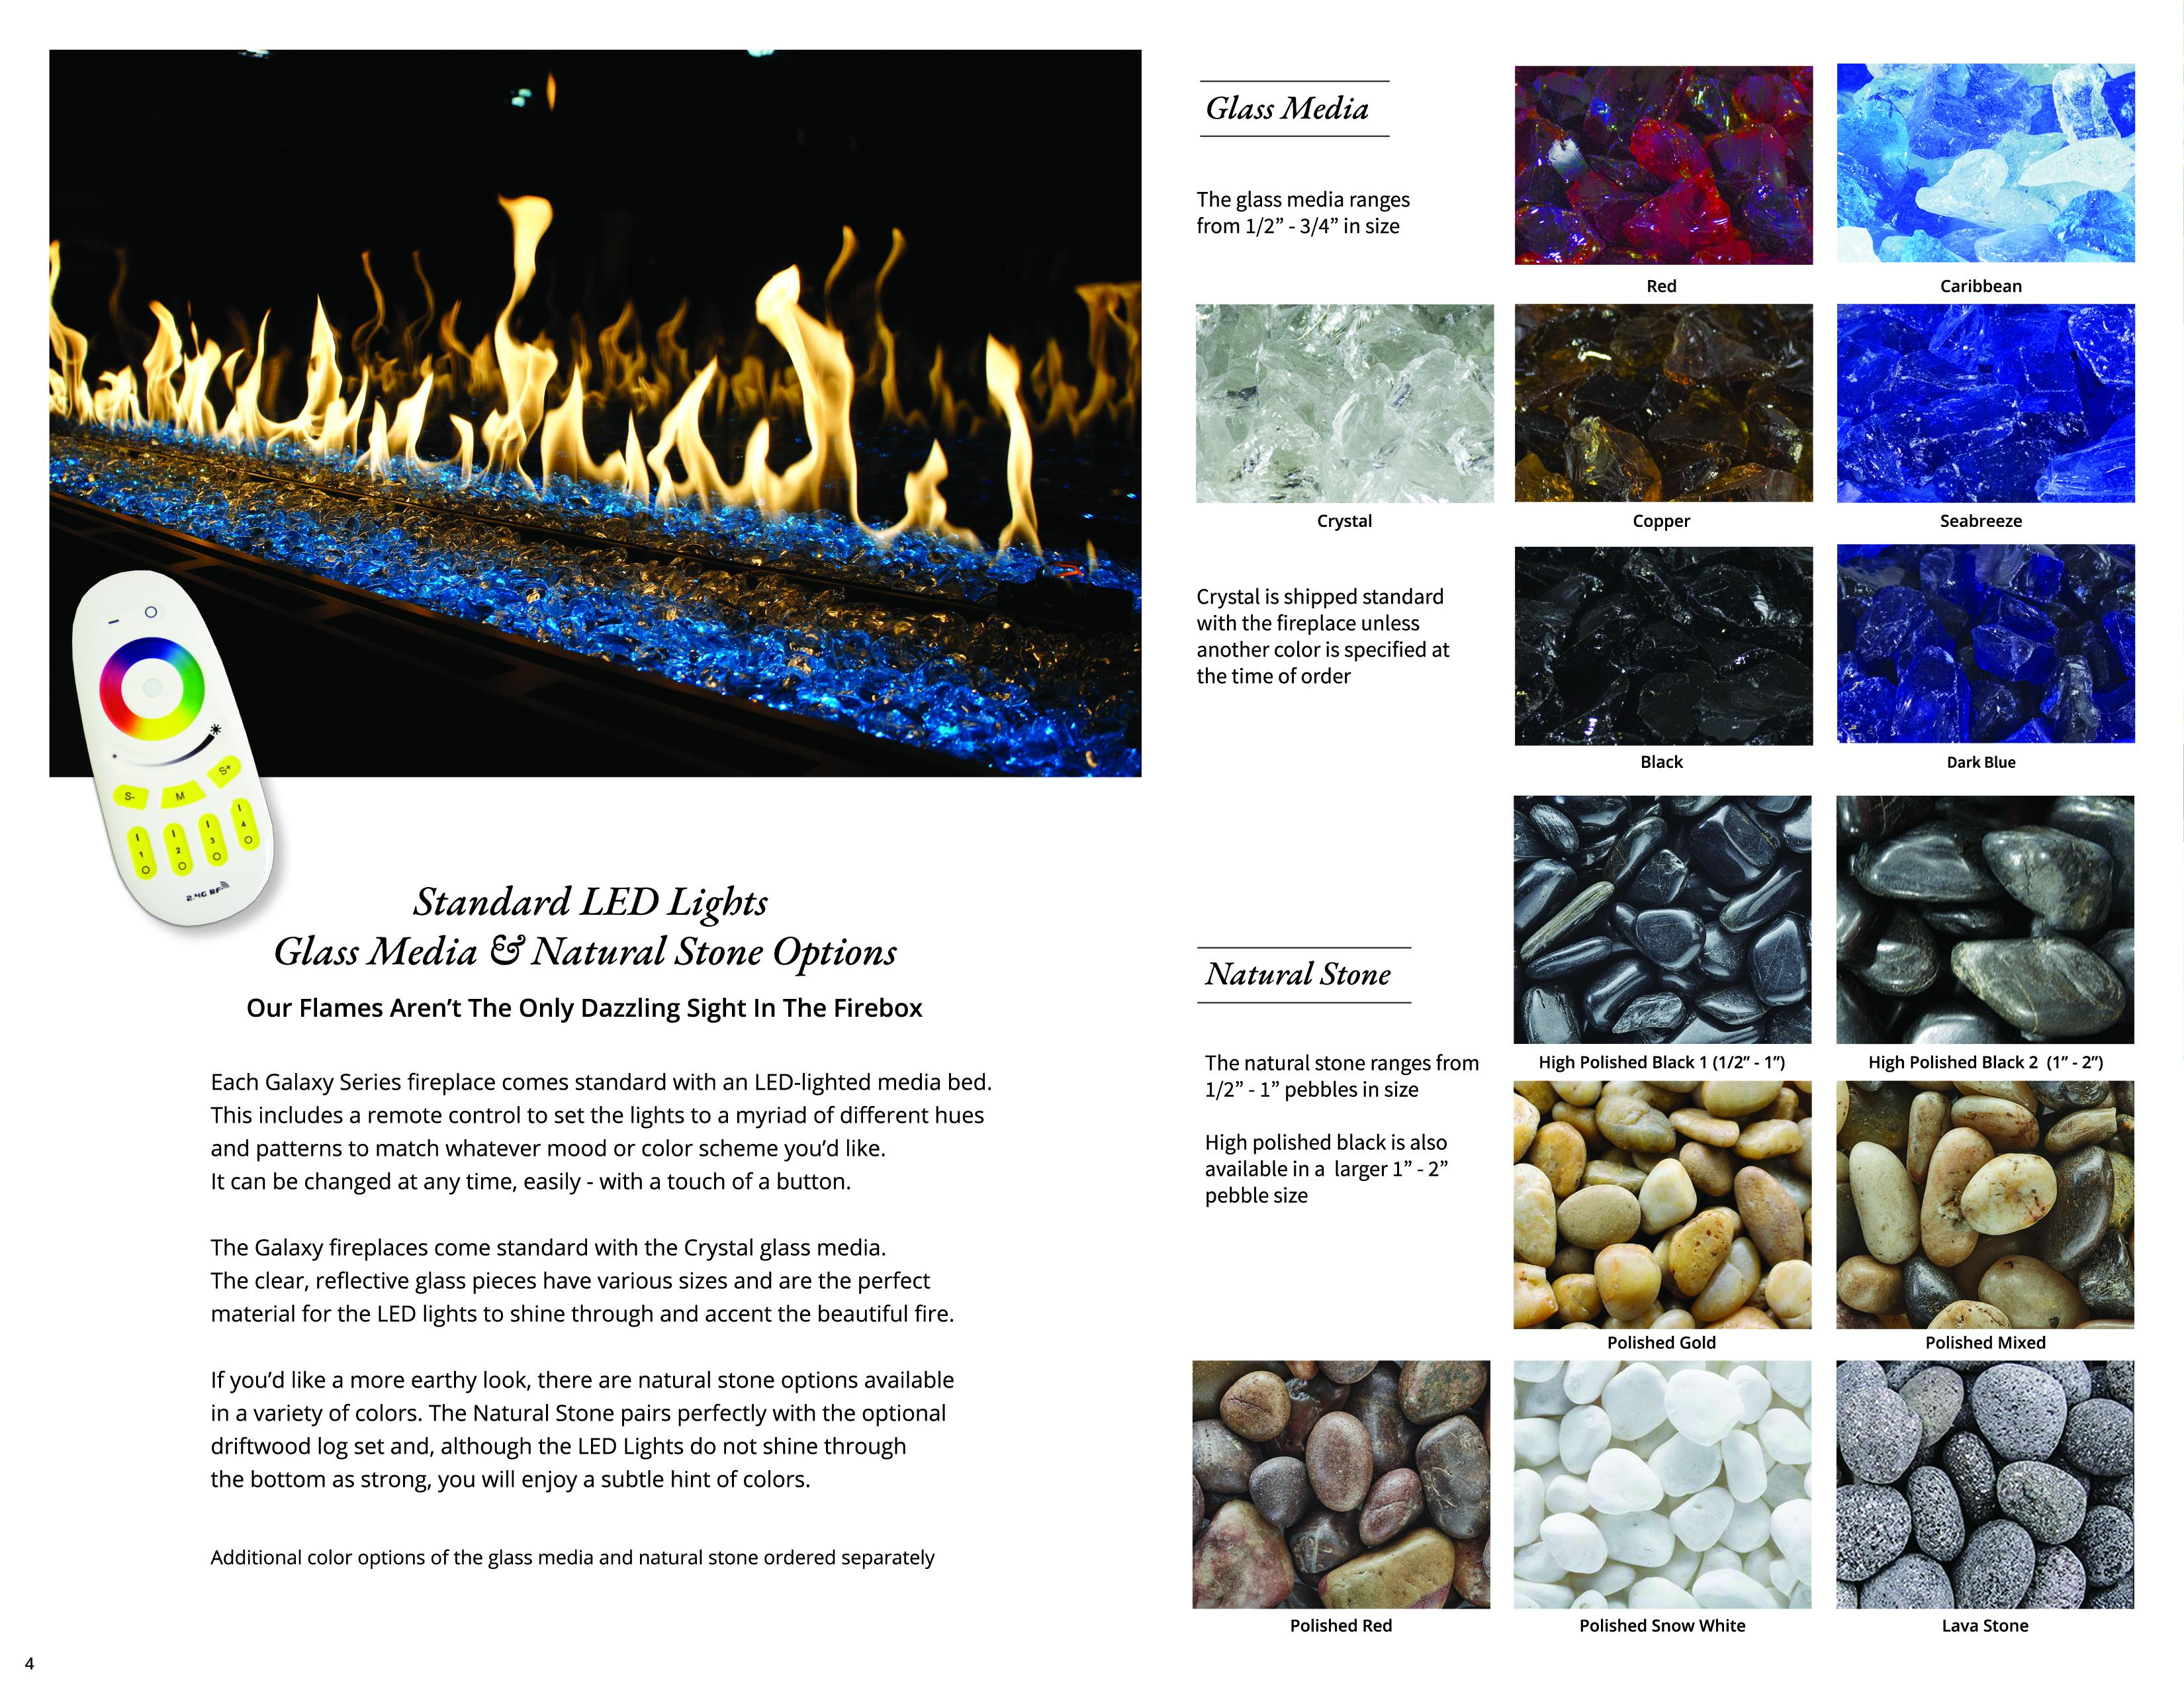 LED Lights, Glass Media and Natural Stone Choices